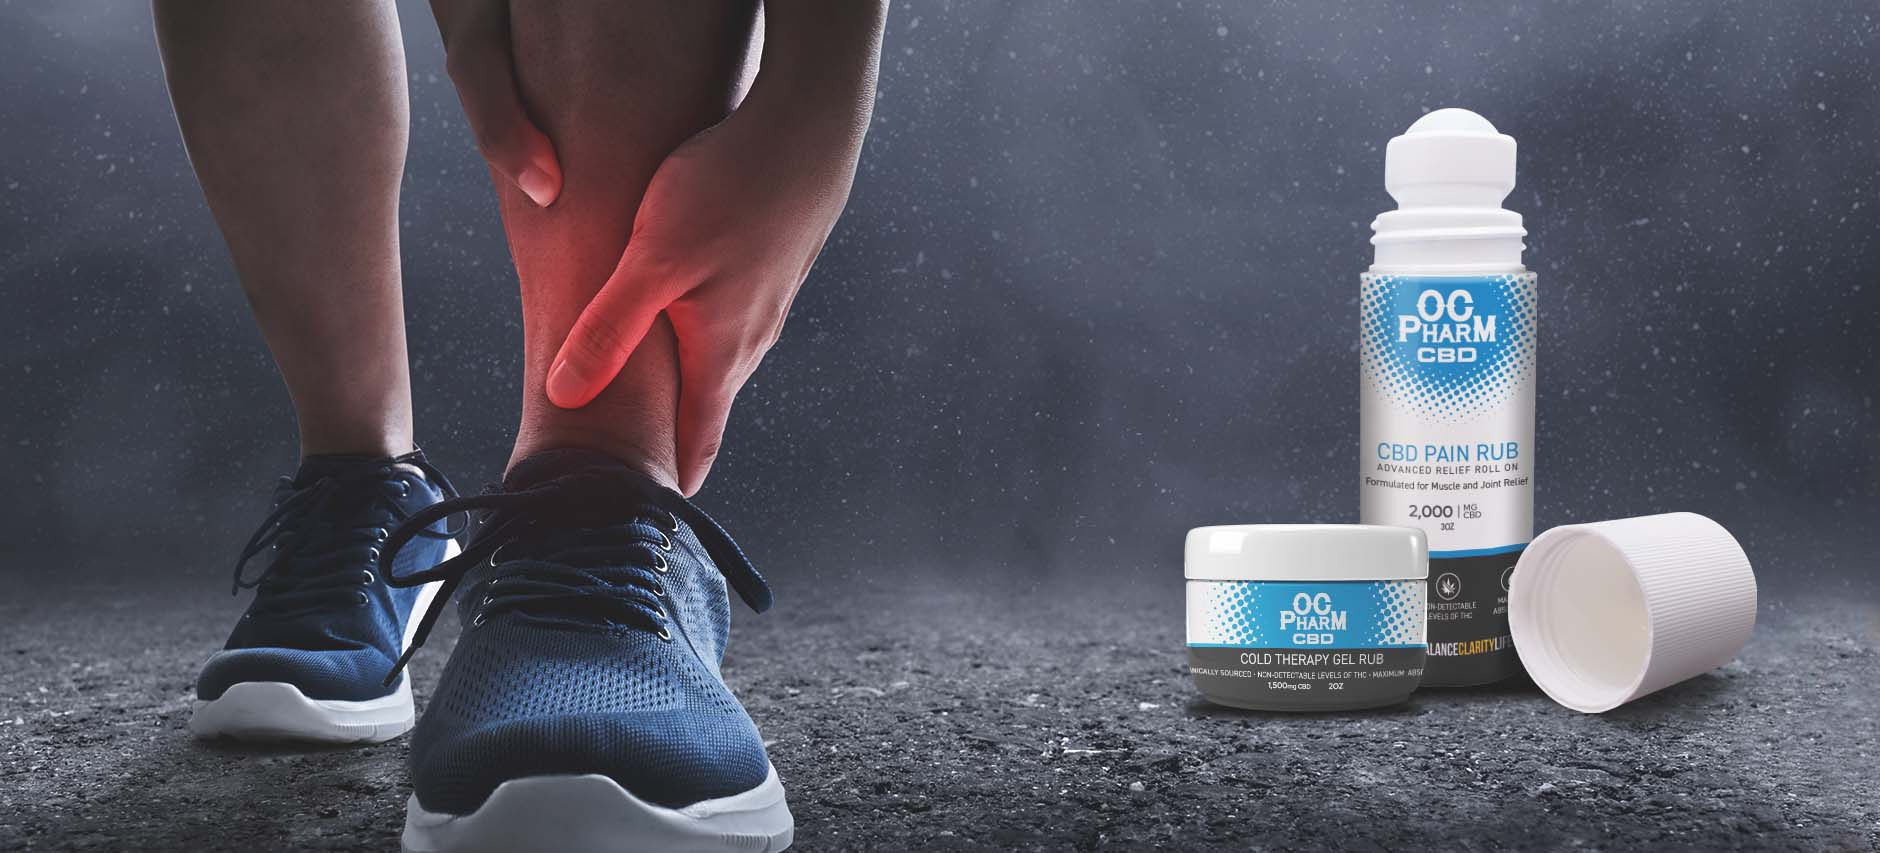 Introducing our new CBD Pain Rub and Cold Therapy Gel